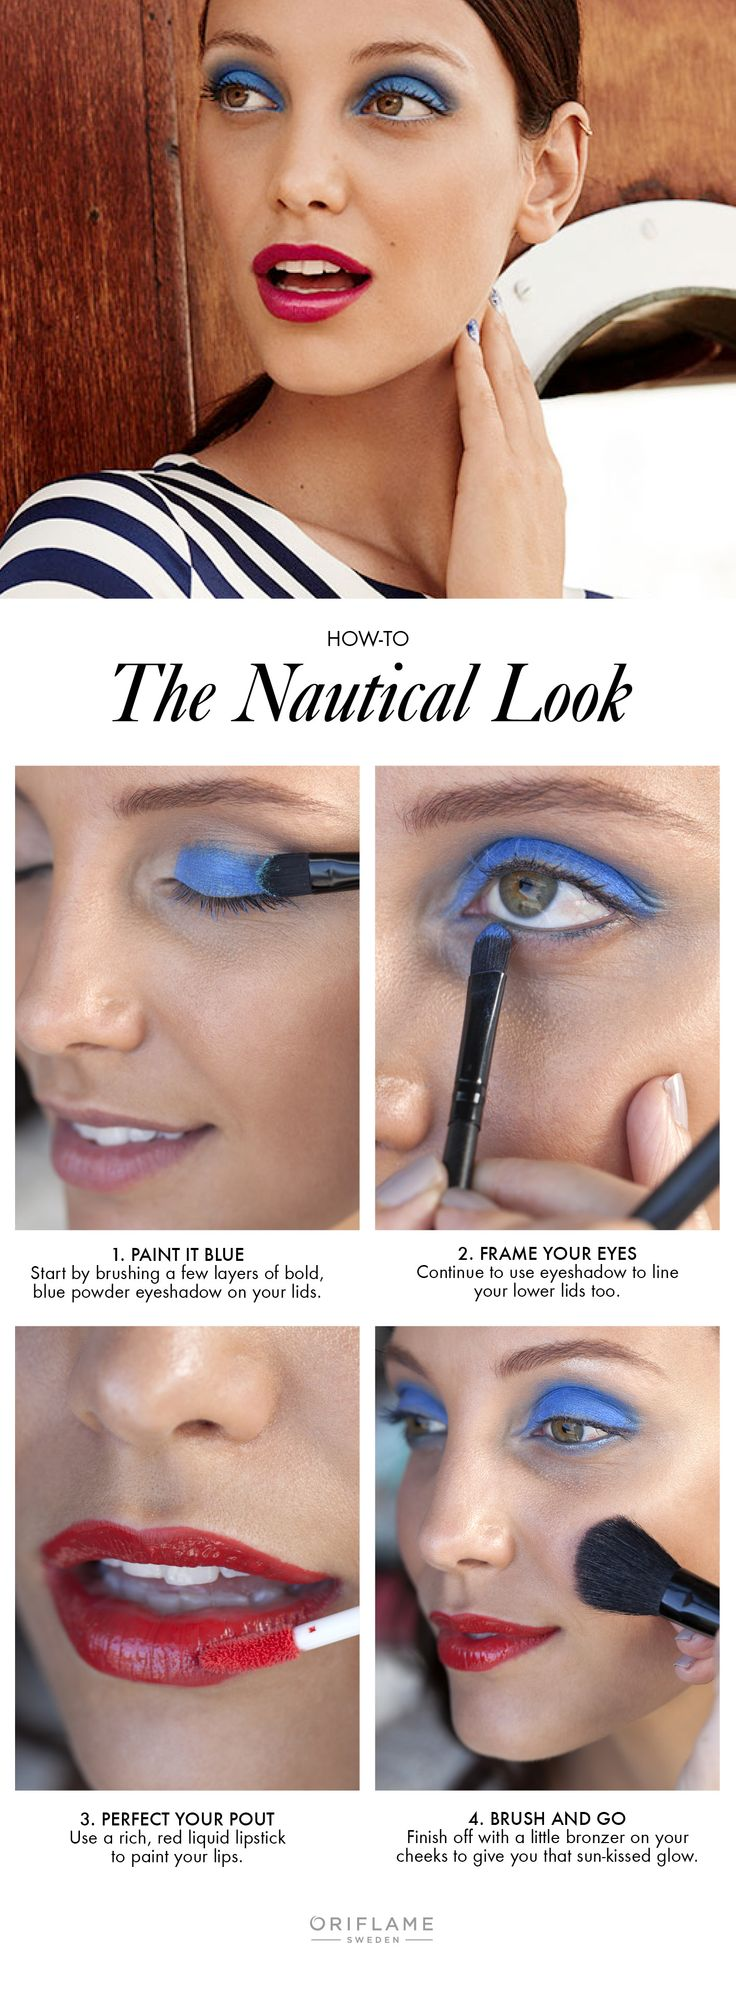 Bold blue eyeshadow and stand-out red lips make for a modern upgrade to nautical inspired makeup. And a great alternative to summer shades of nude and beige.